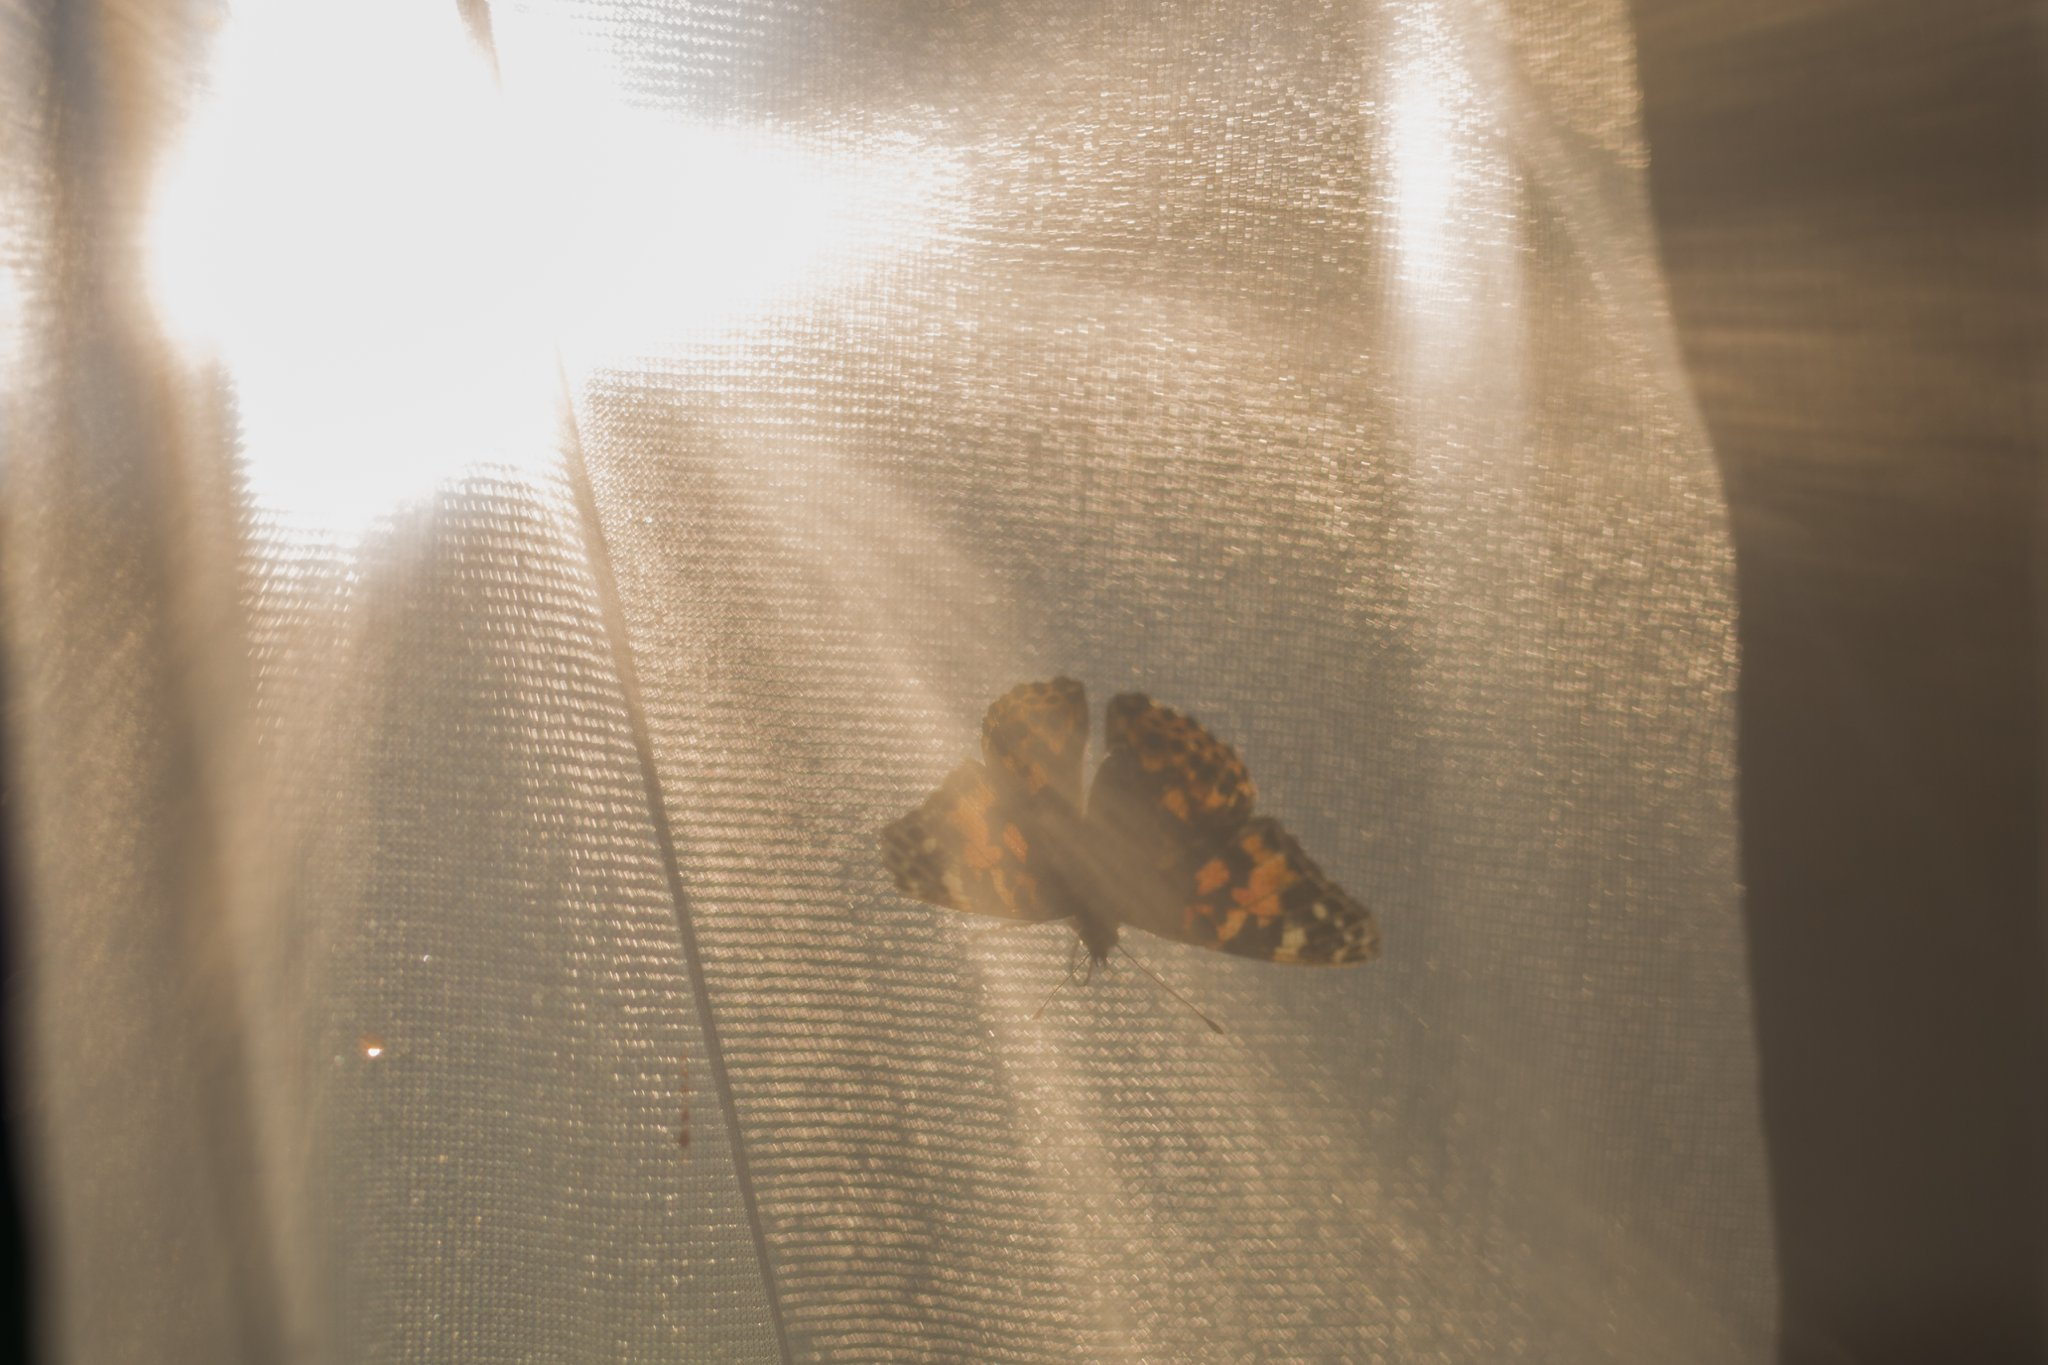 We watched this butterfly spread it's wings for the first time.